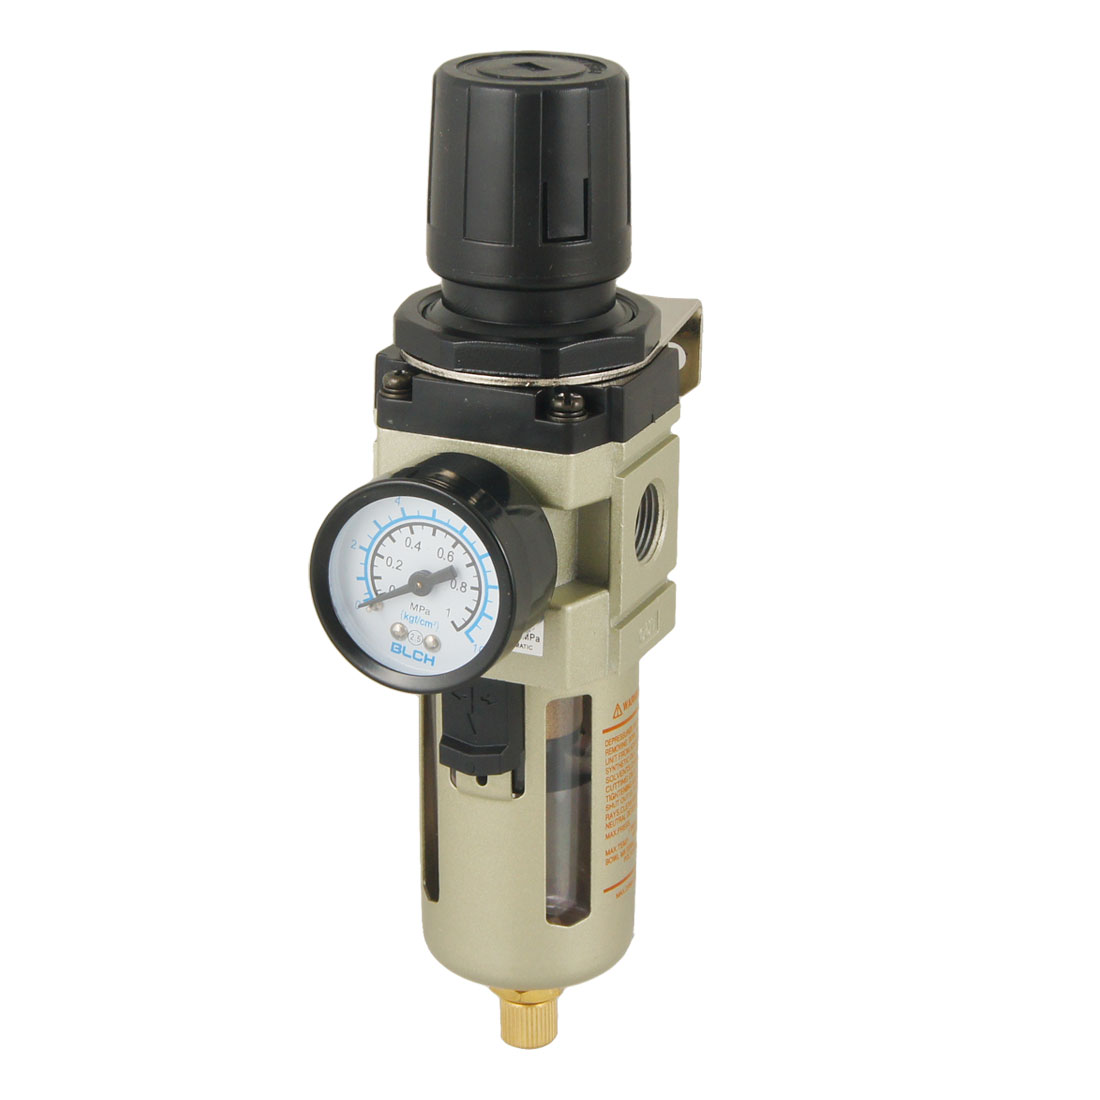 0.05-0.85Mpa Air Source Gas Treatment Pressure Regulator w 0-1Mpa Pressure Gauge